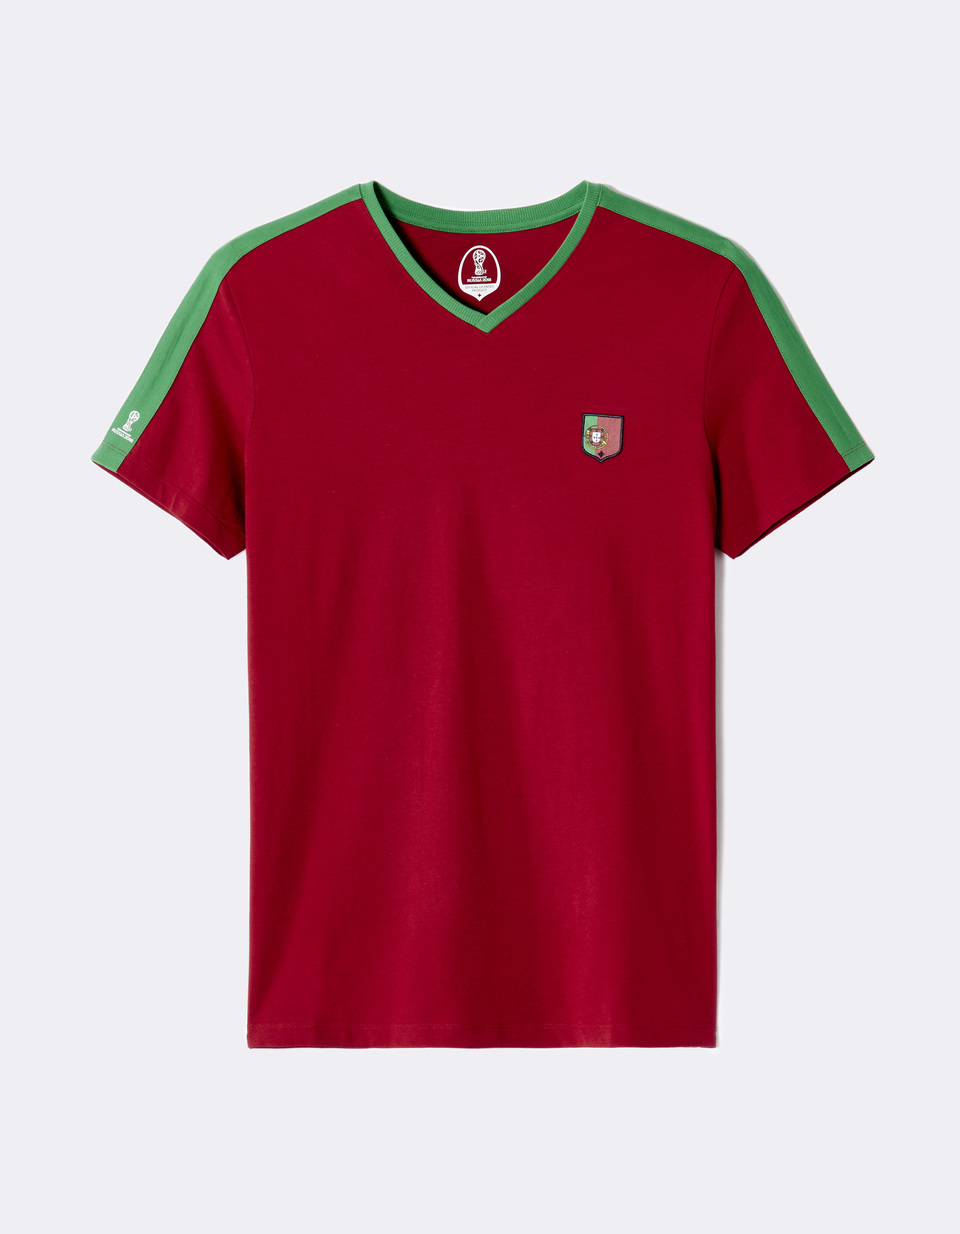 t shirt portugal 2018 fifa world cup russia llefifave celio france. Black Bedroom Furniture Sets. Home Design Ideas